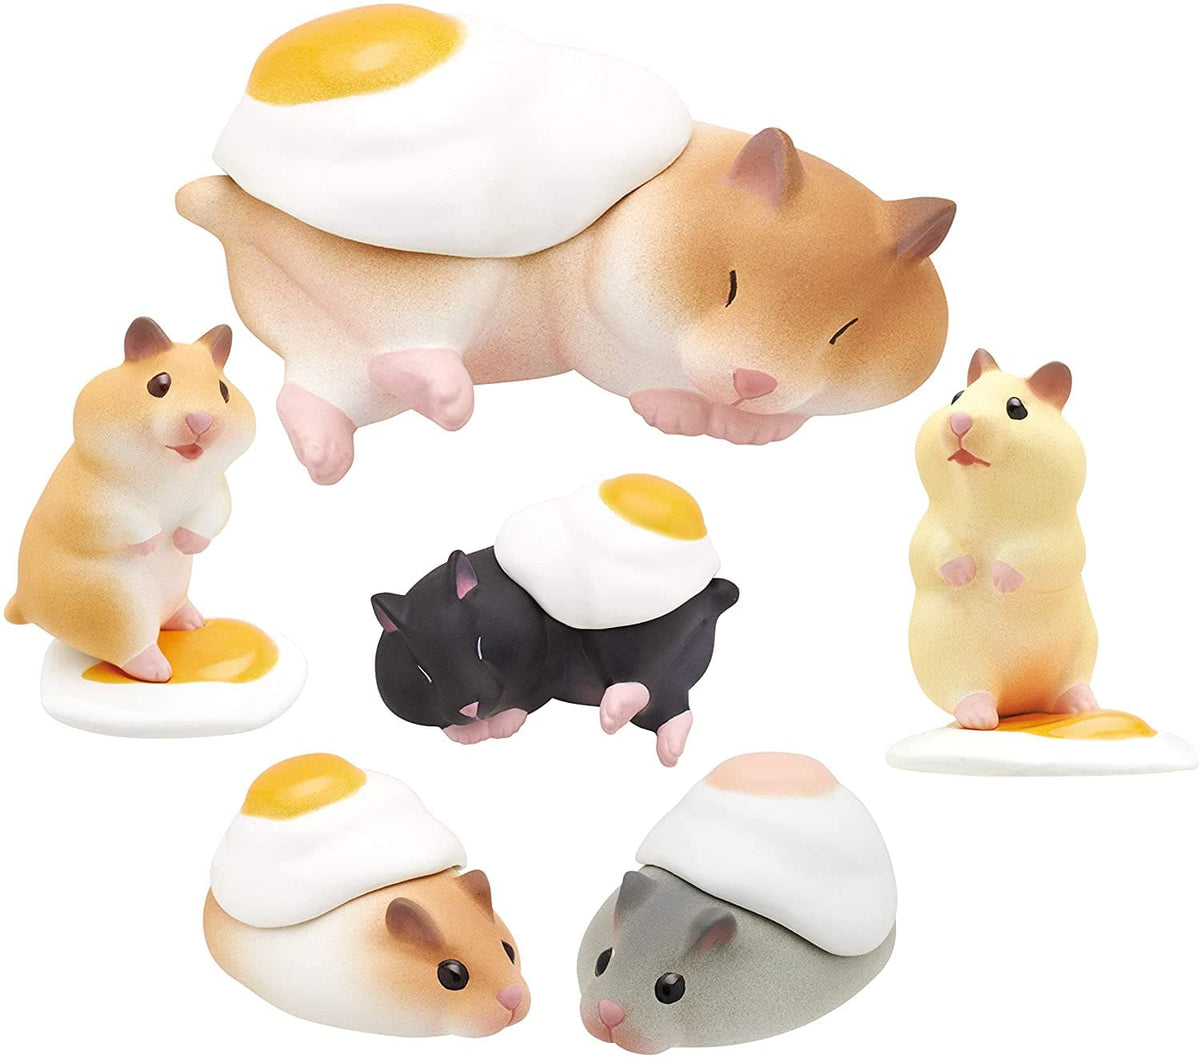 Kitan Club - Hamster 'N Egg Blind Box - Assorted Styles - Legacy Toys